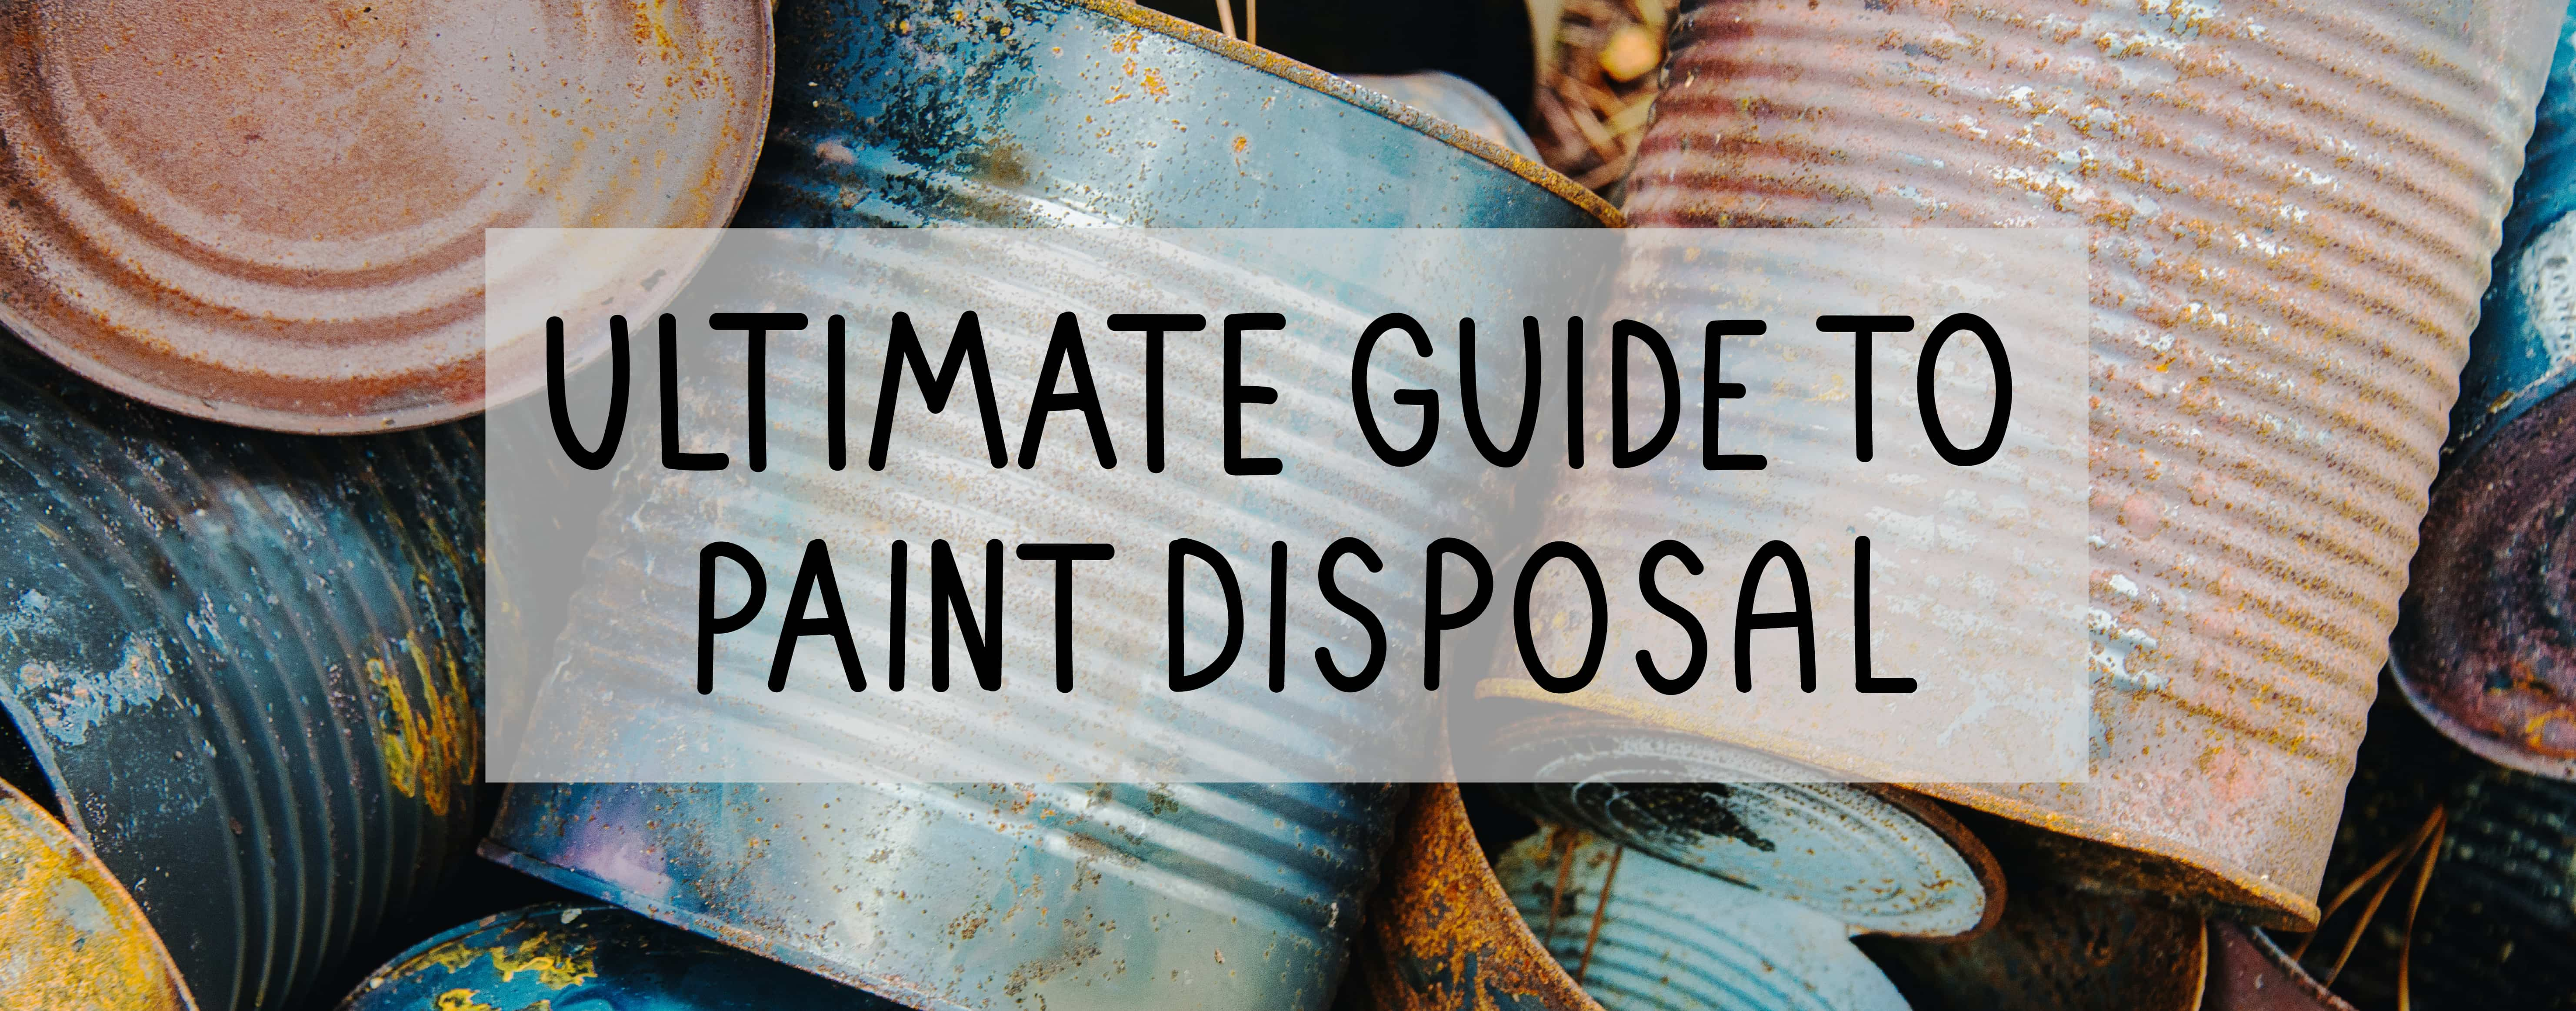 old paint tins guide to paint disposal